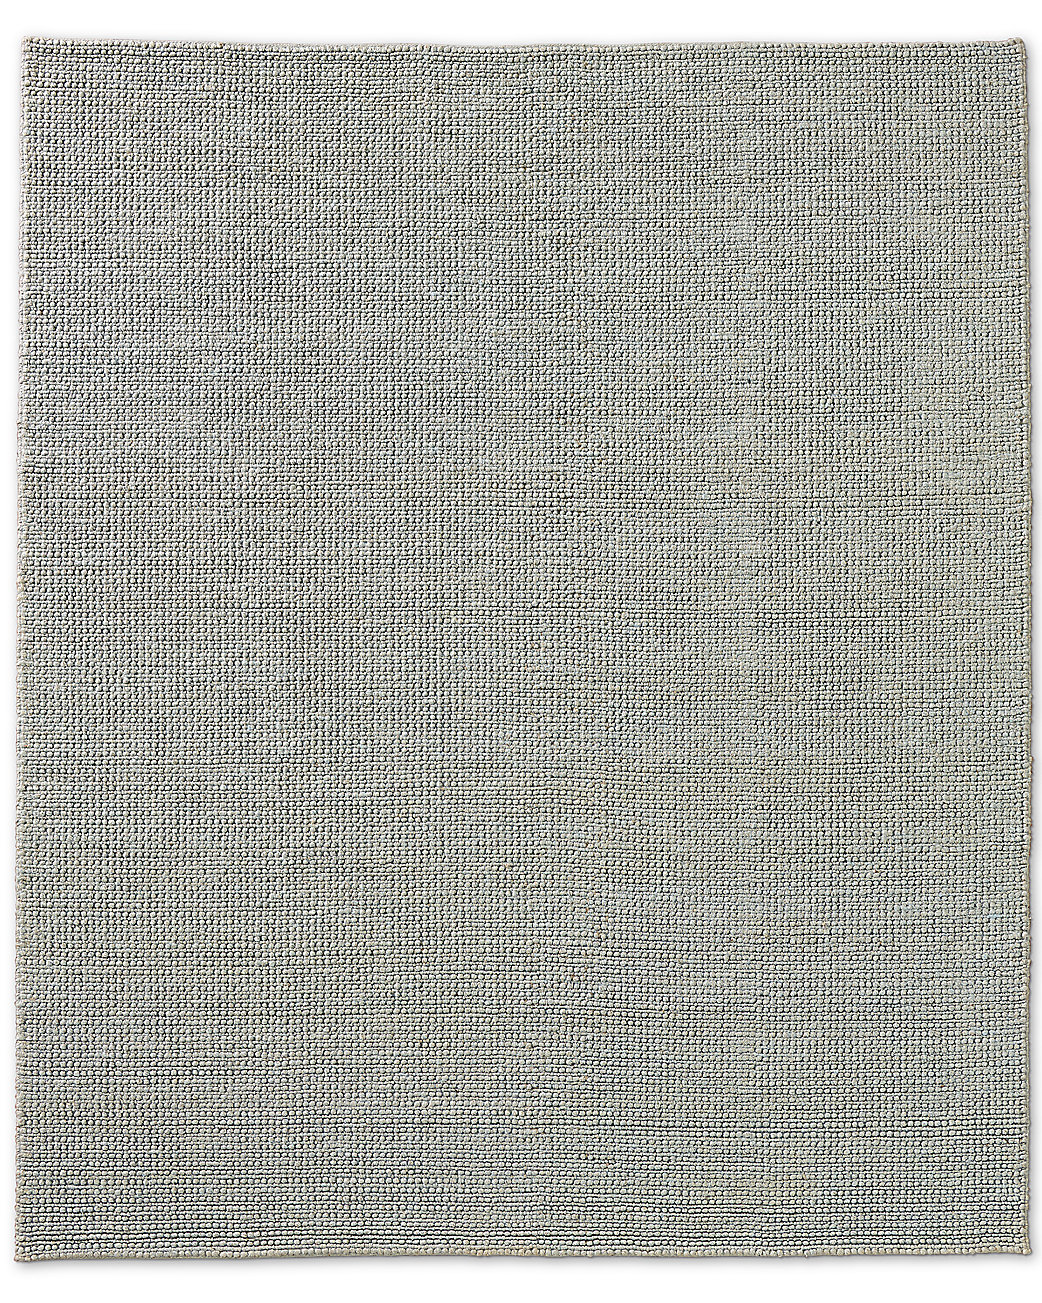 Knotted Jute Rug Light Grey